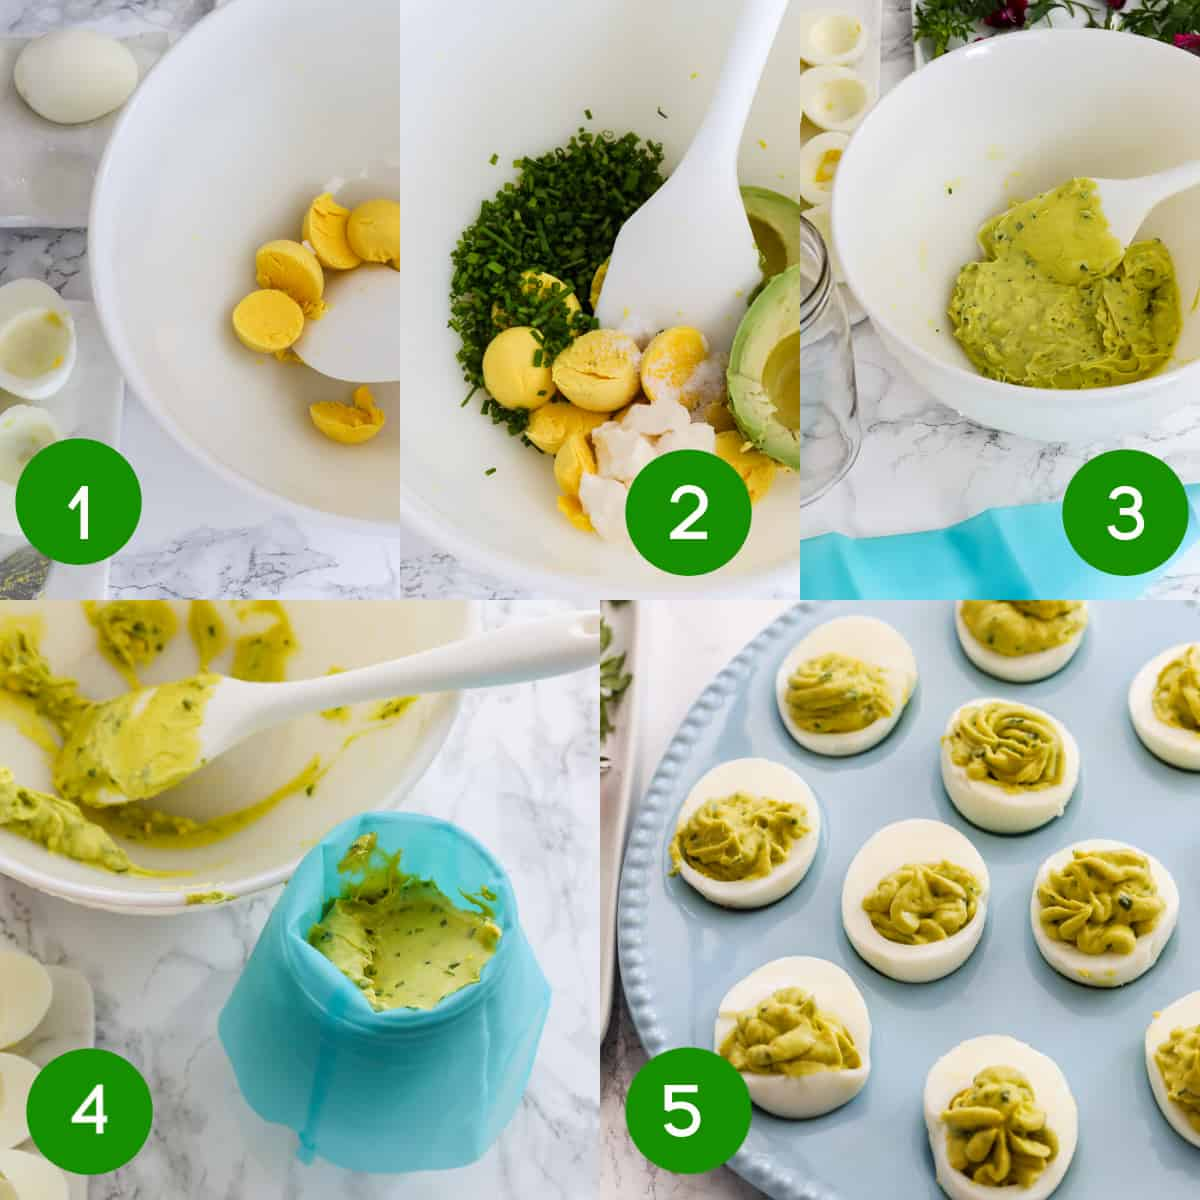 5 Steps to make Easter deviled eggs with garden herbs and edible flowers.